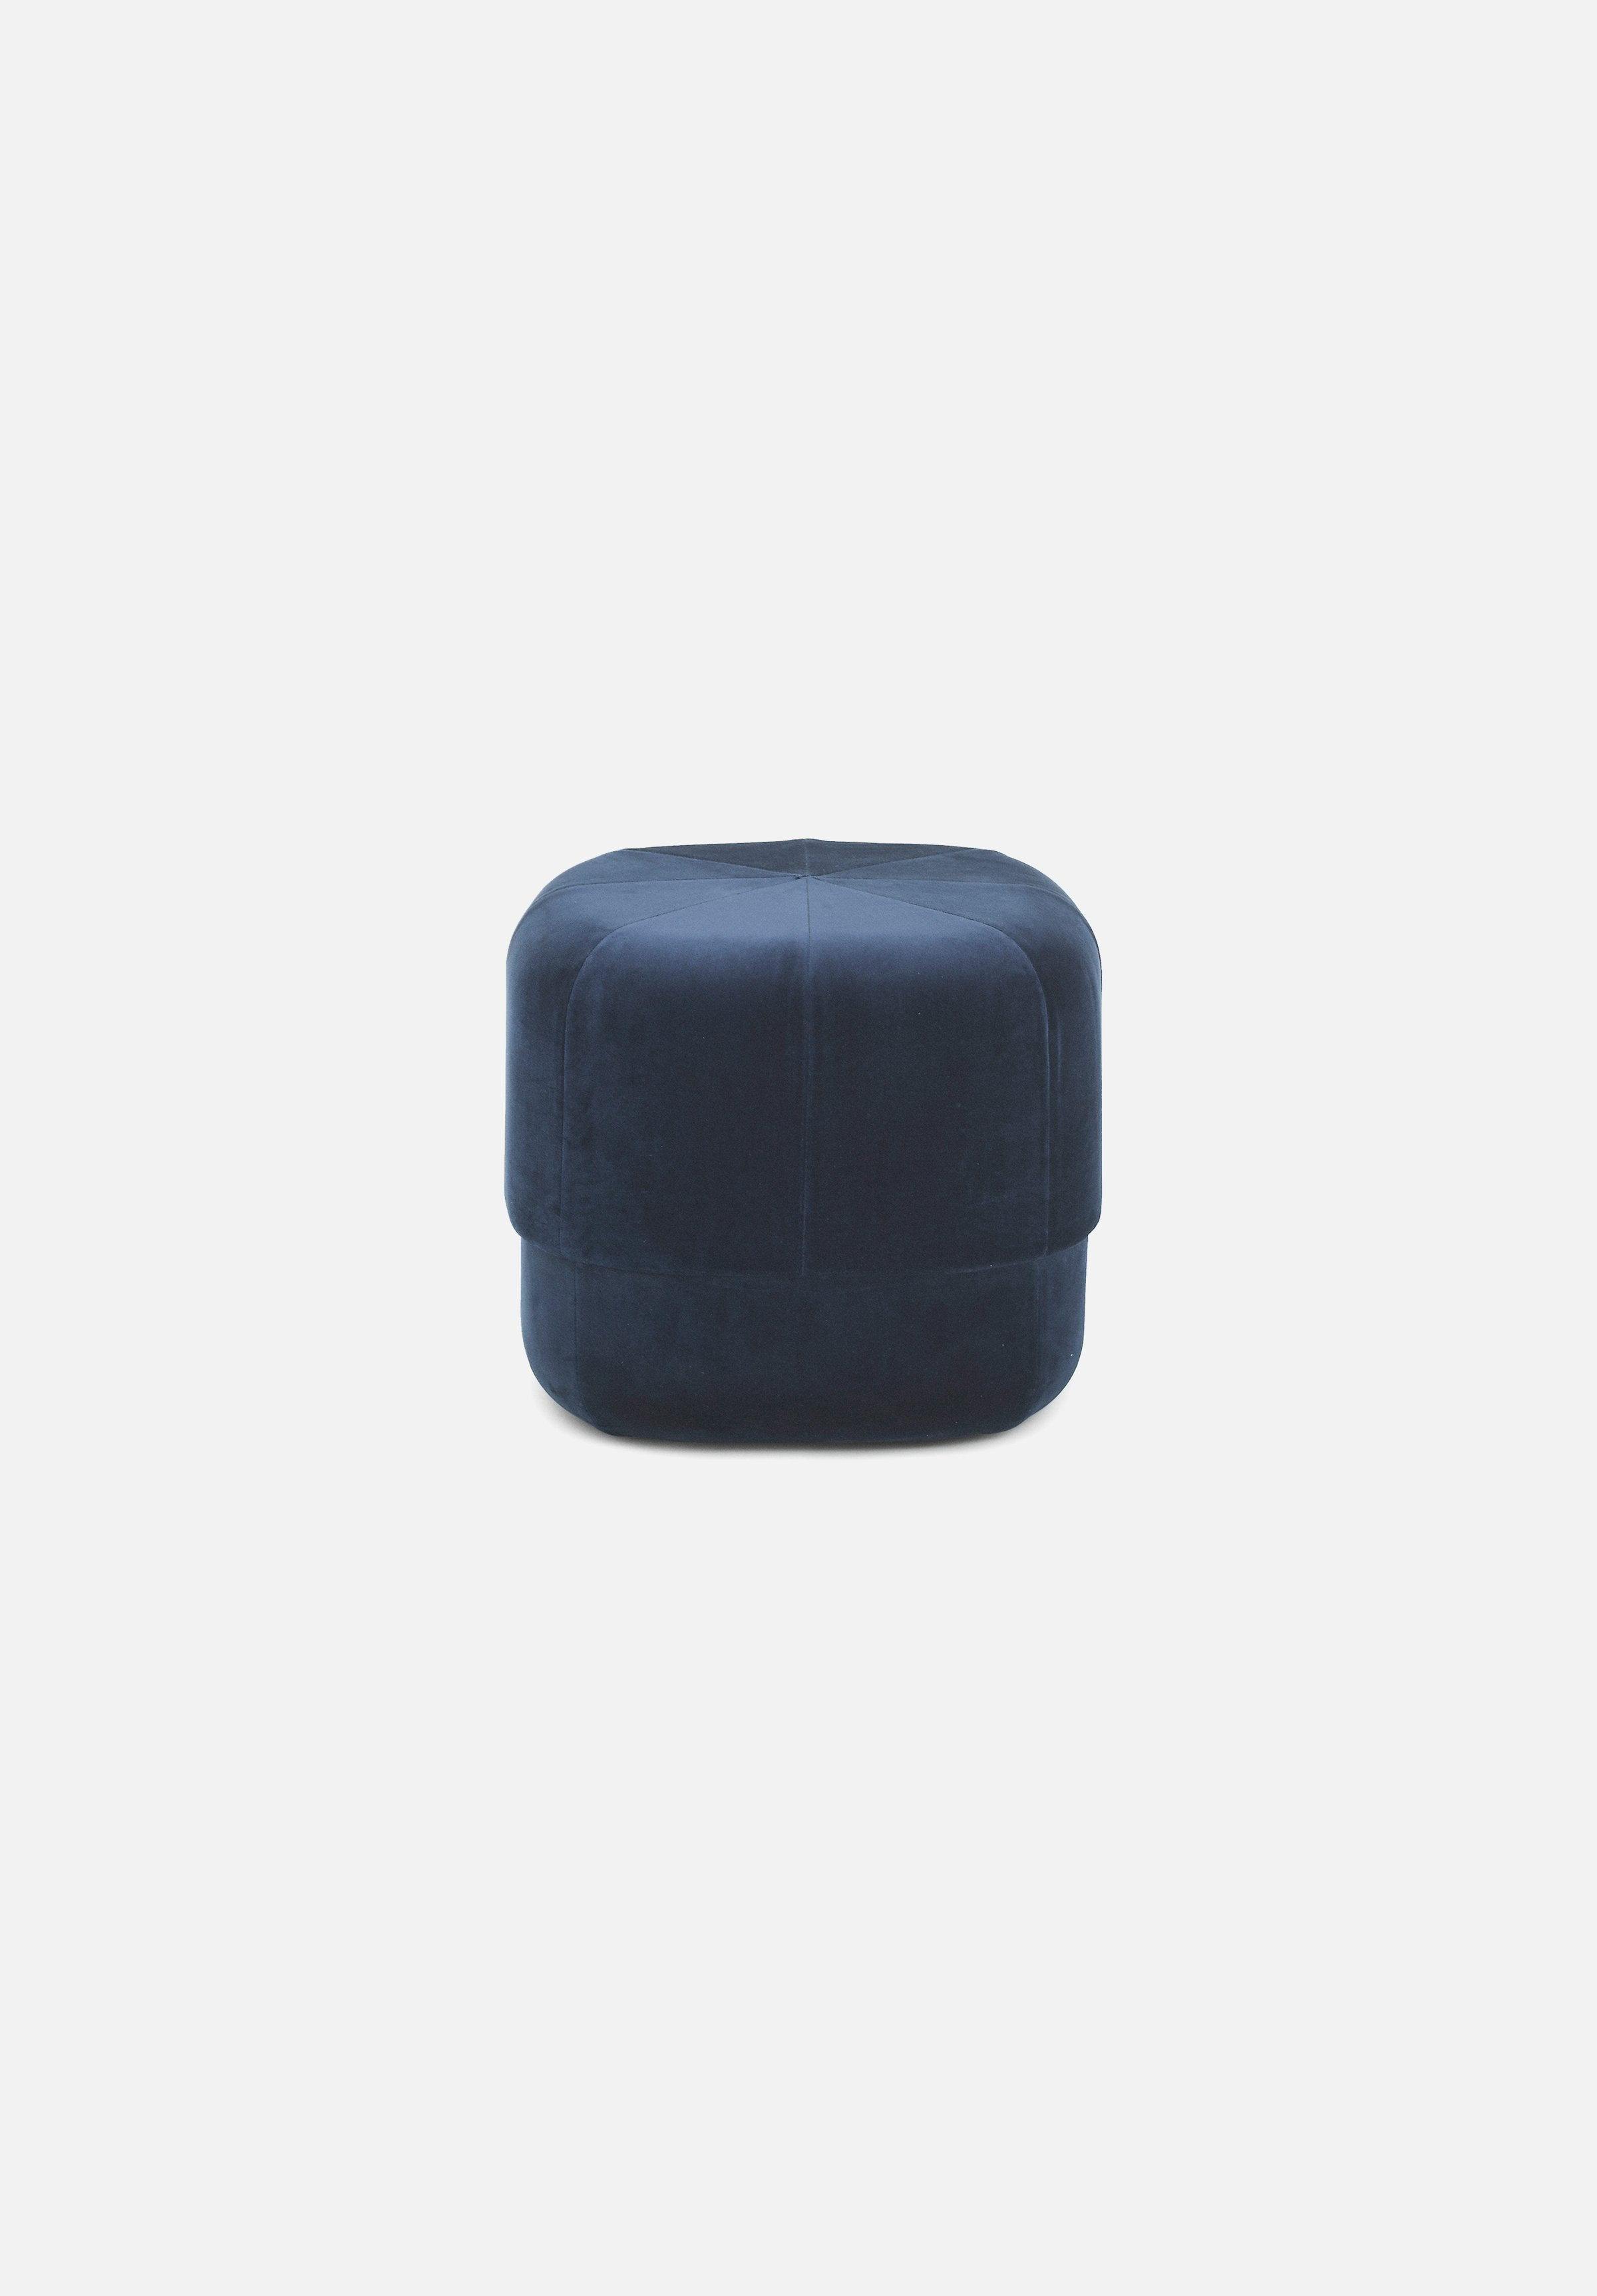 Circus Pouf — Small-Simon Legald-Normann Copenhagen-Dark Blue-Average